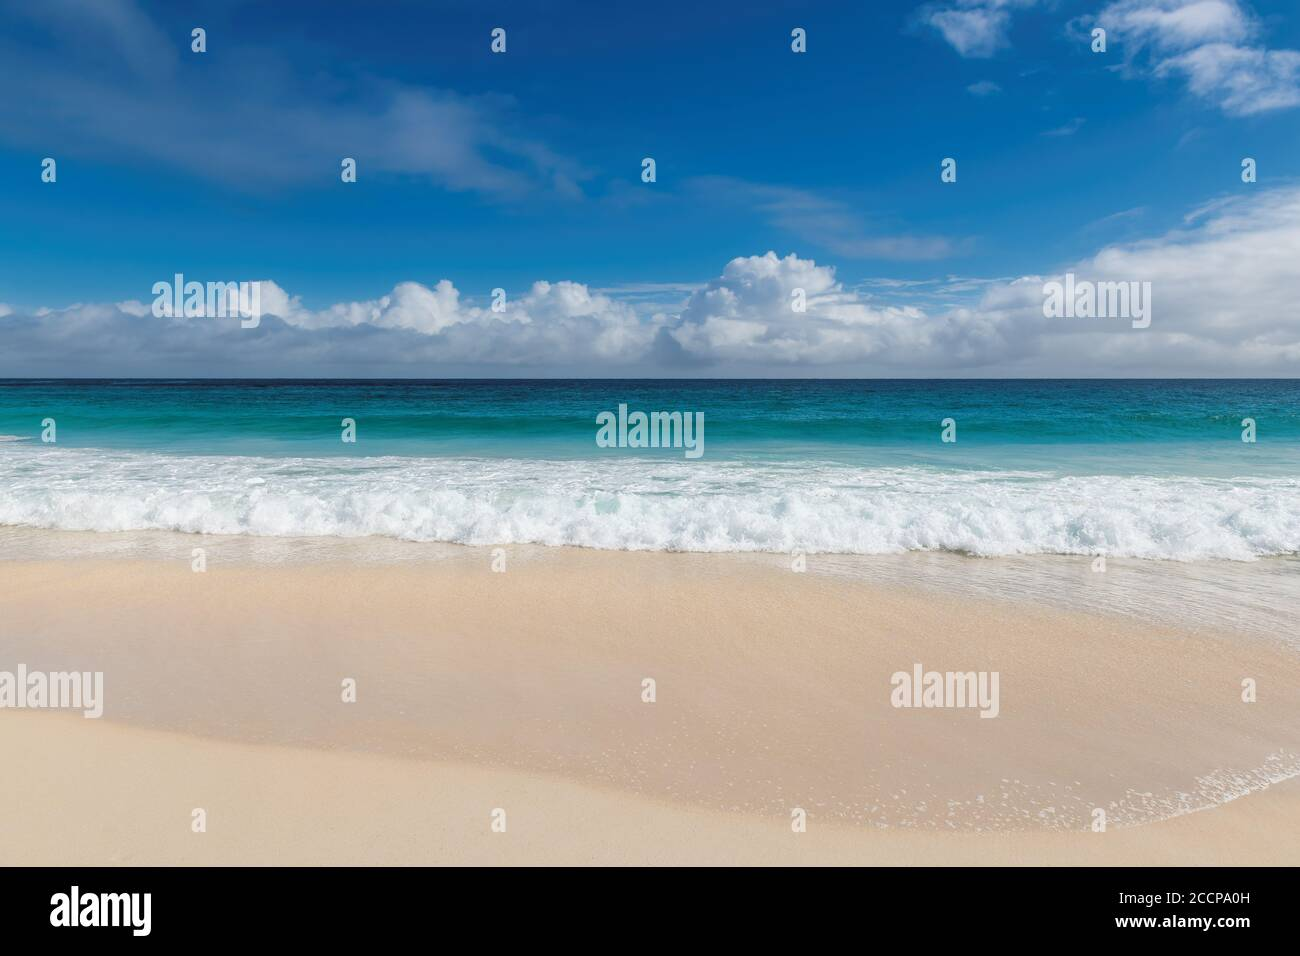 Paradise beach with white sand and paradise sea. Summer vacation and tropical beach concept. Stock Photo